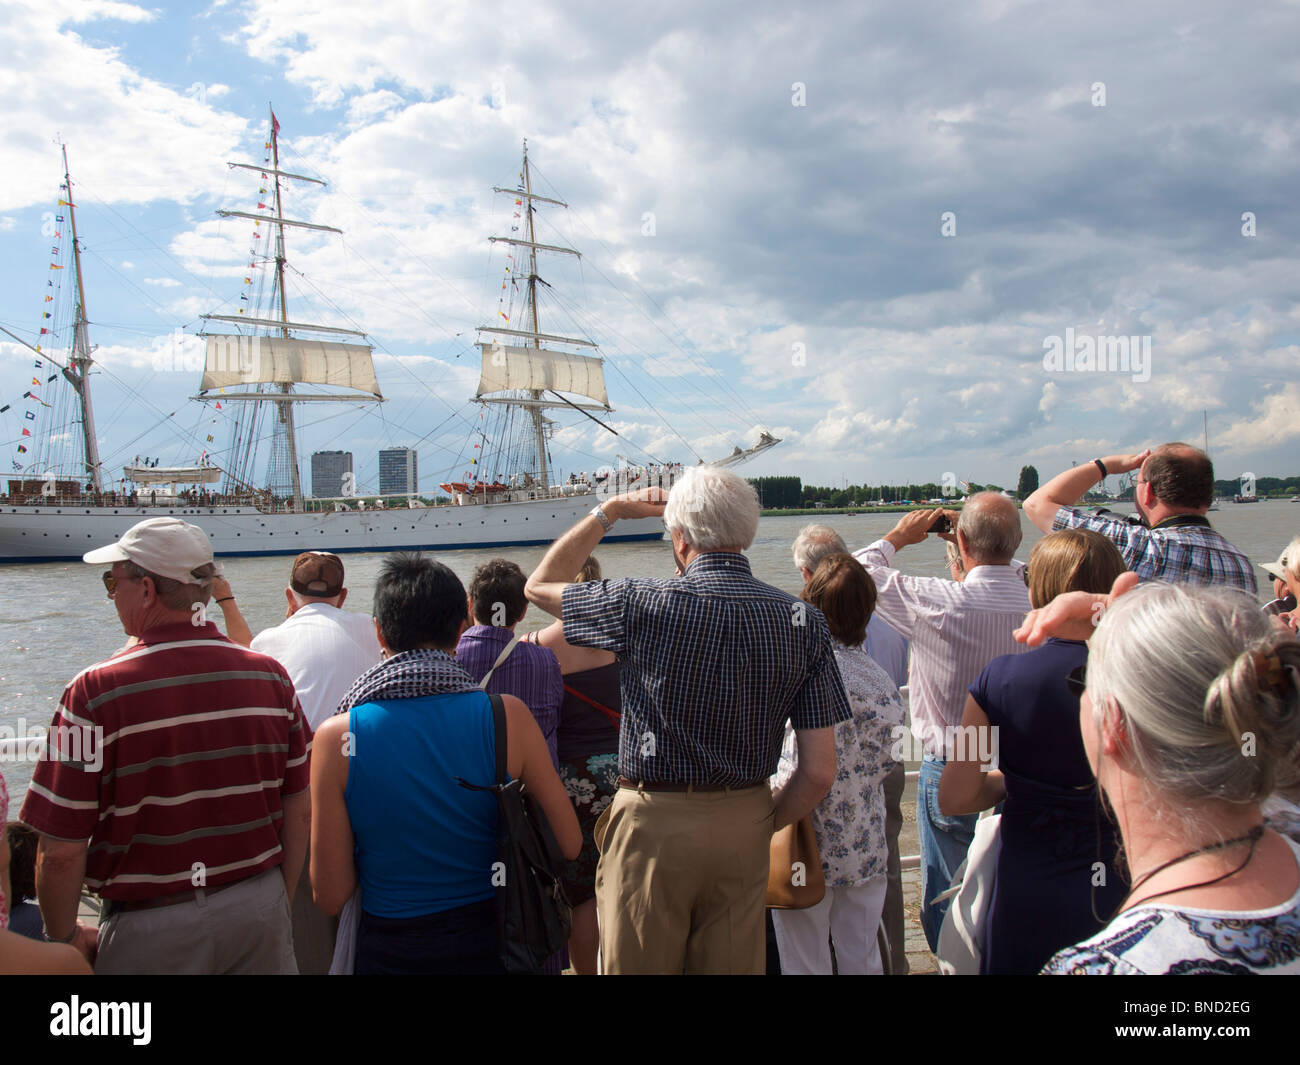 Many people watching the tall ship departure at the Antwerp tall ship races 2010 - Stock Image